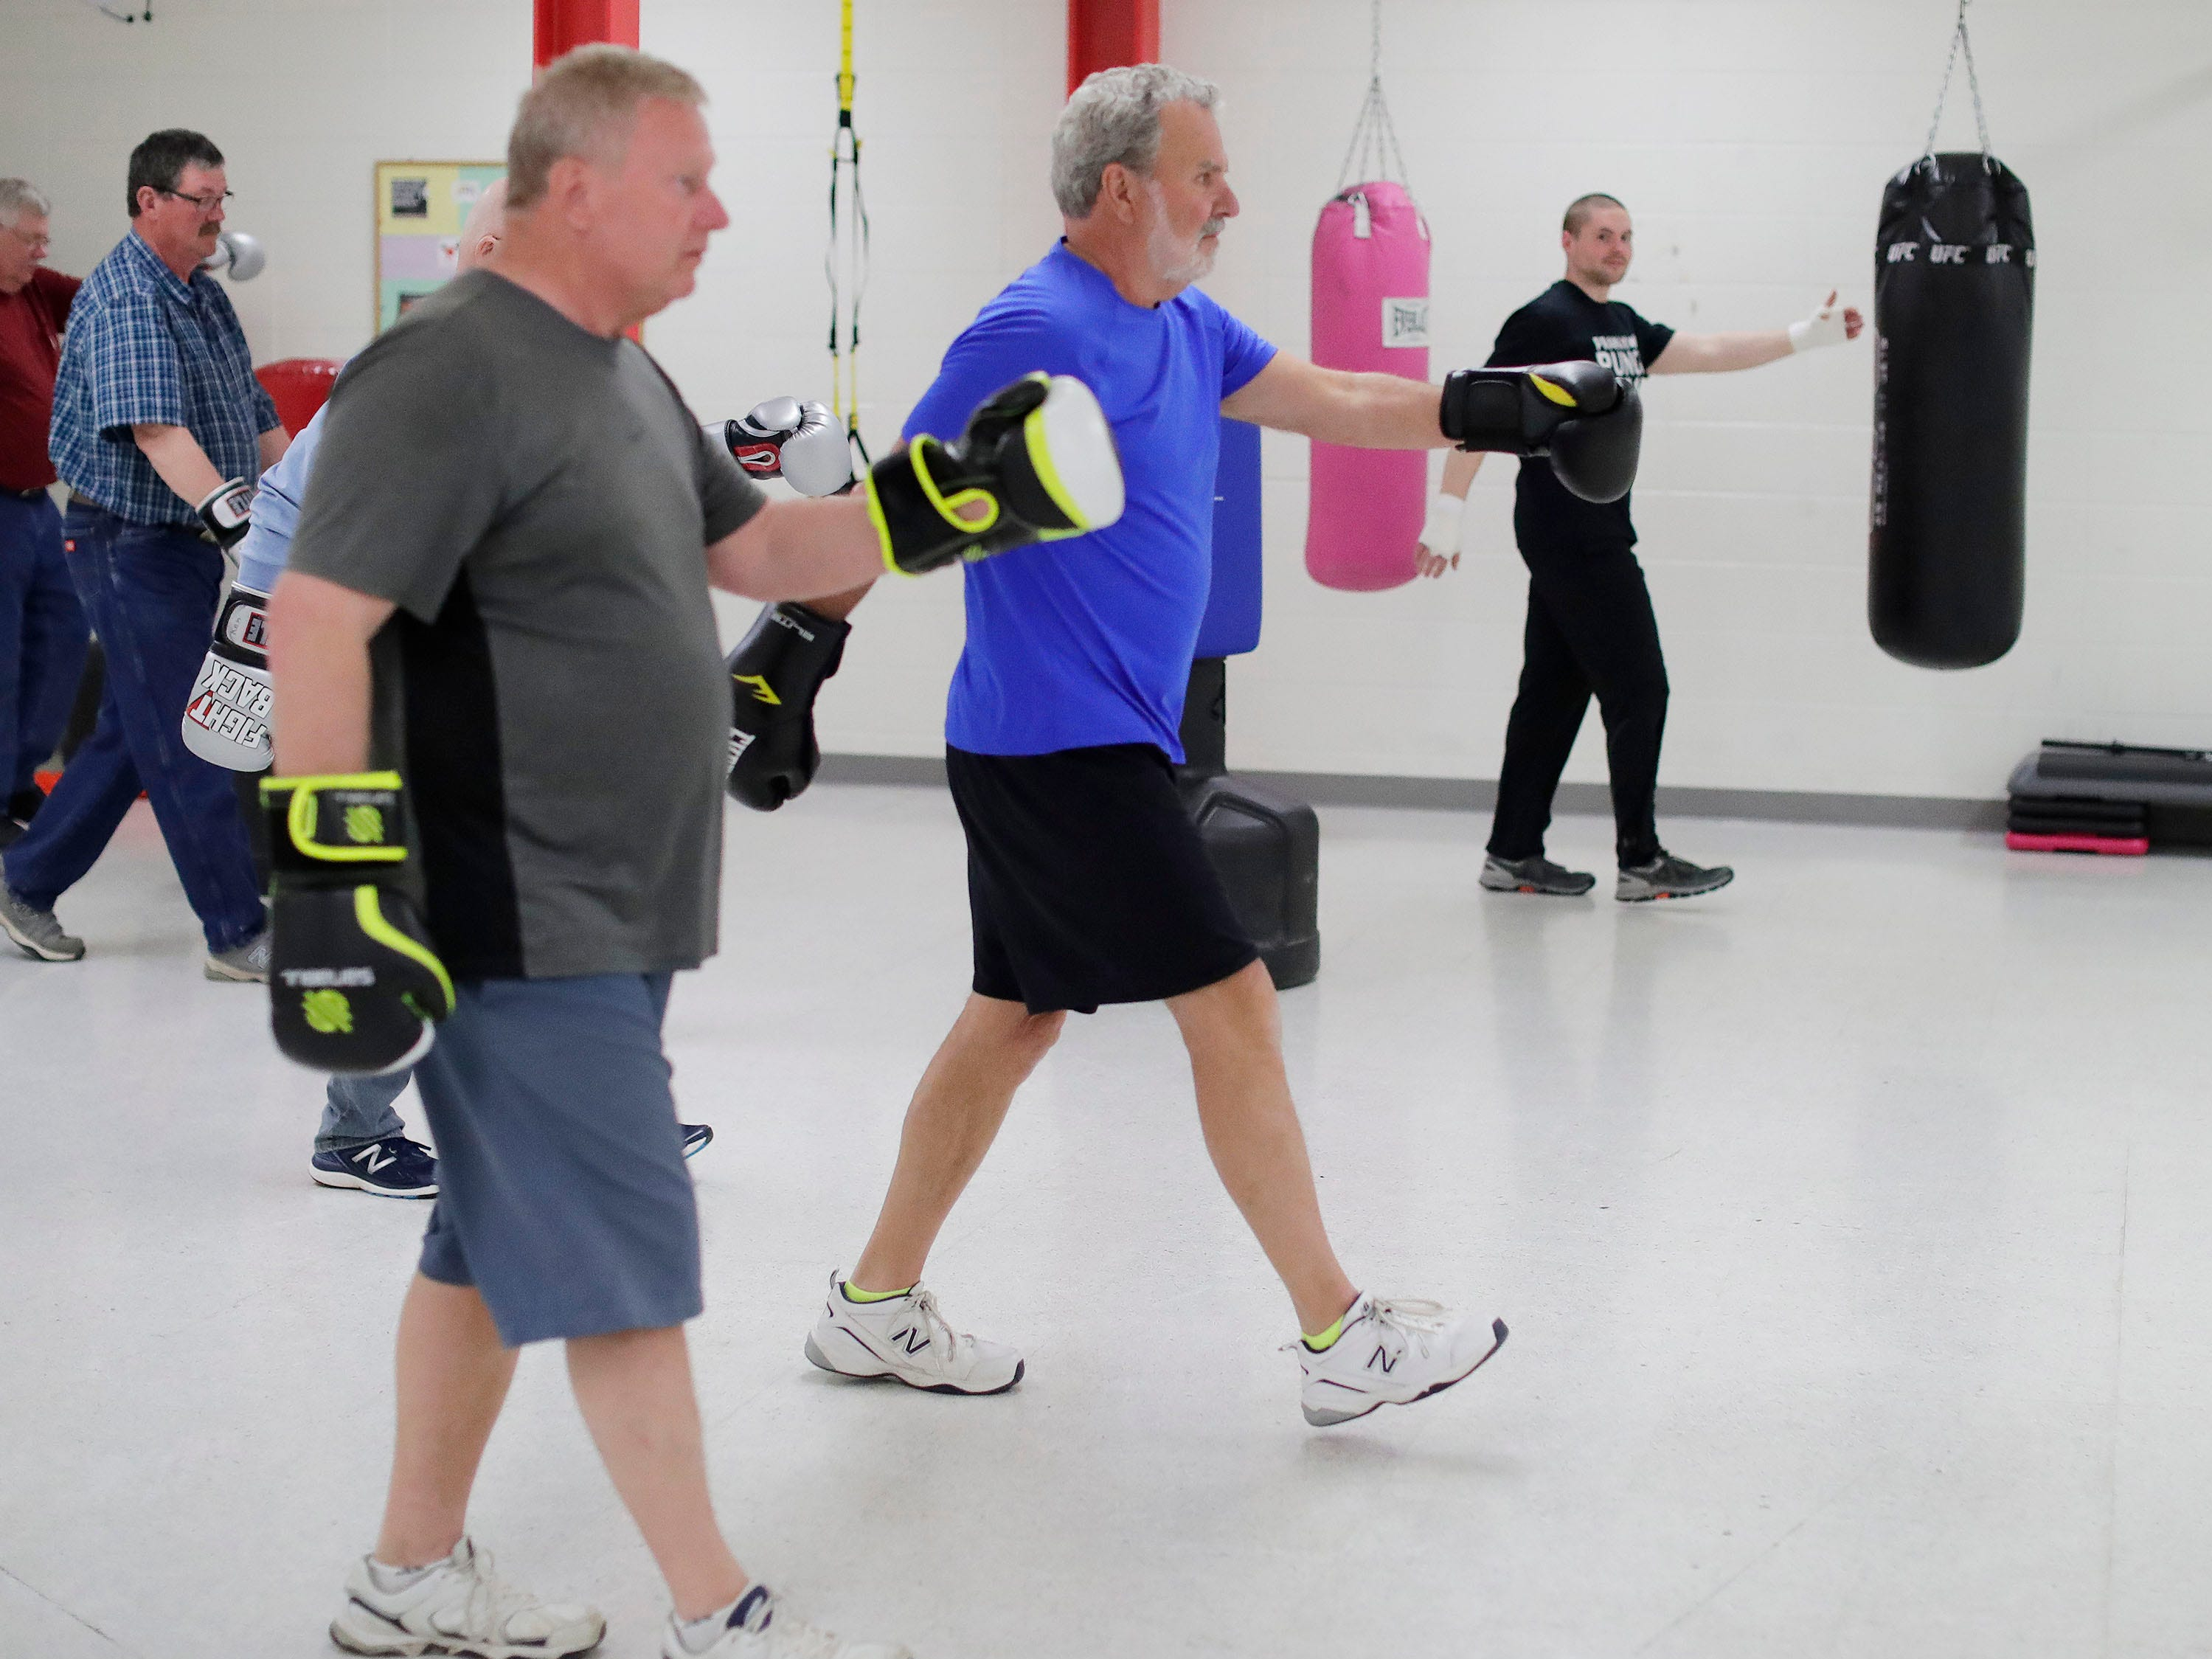 Students in the Fighting Parkinson's class take in a step routine to improve their motor function during a workout at the YMCA with instructor Jana Adams, right, Tuesday, Mach 26, 2019, in Sheboygan, Wis.